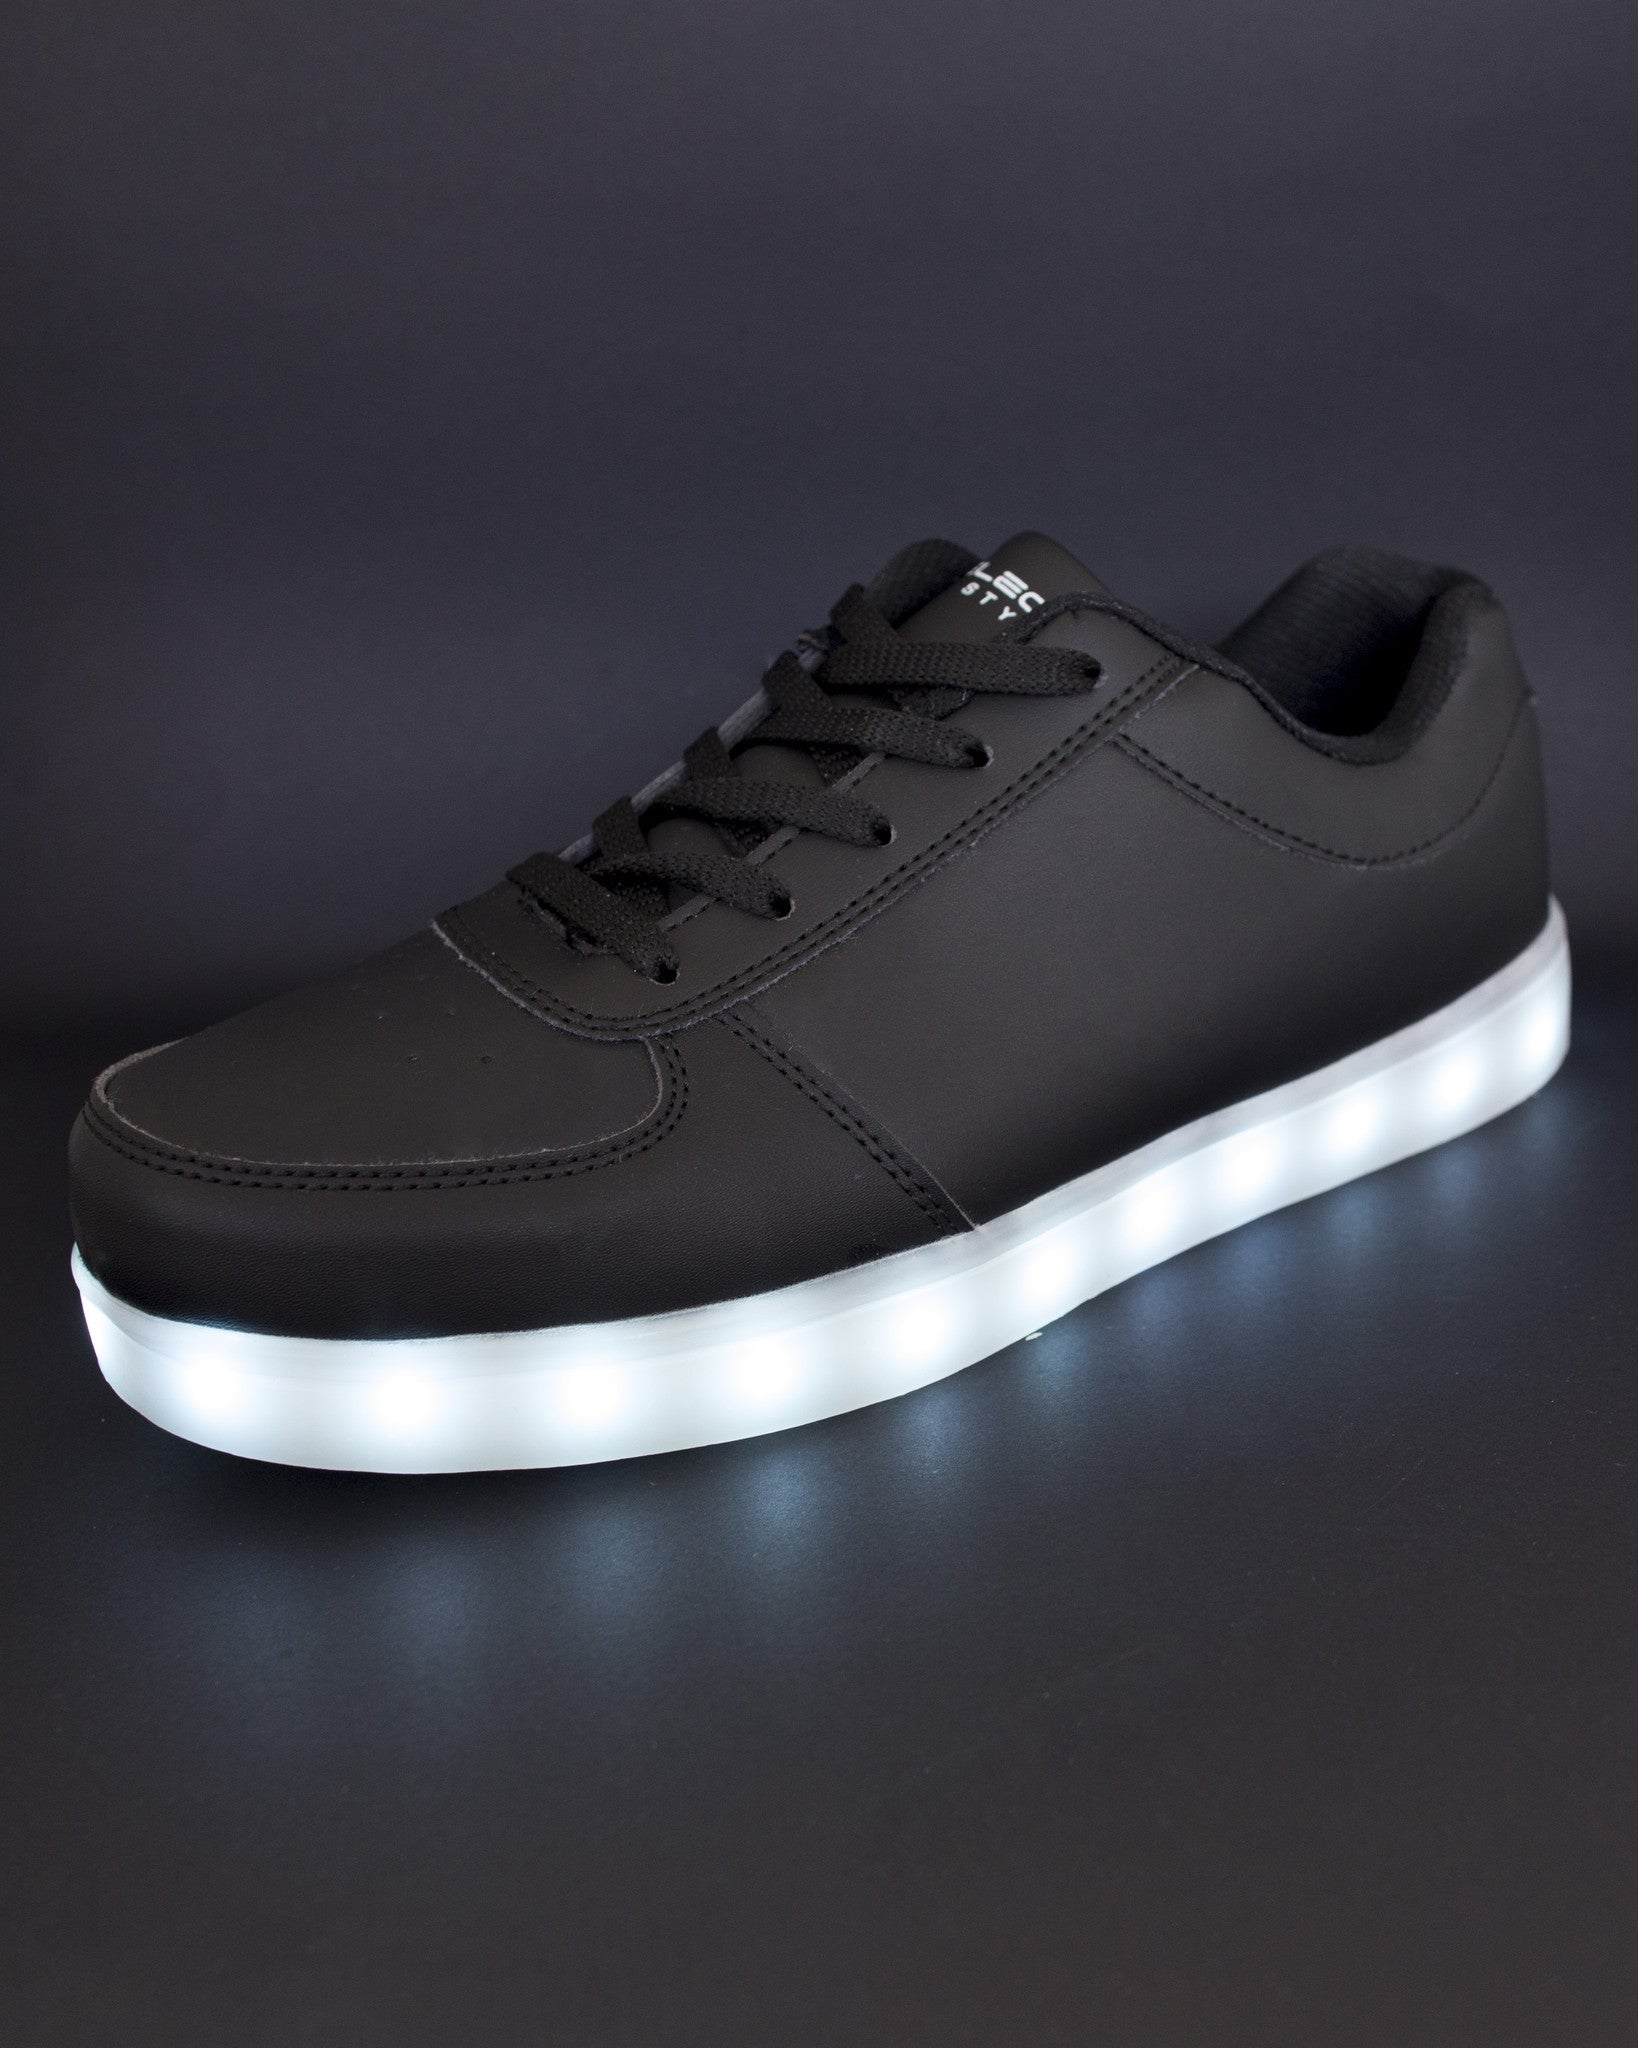 LED Shoes - All Black - Electric Styles | World's Number 1 Light Up Shoe Store - {product_type}} -  - 6